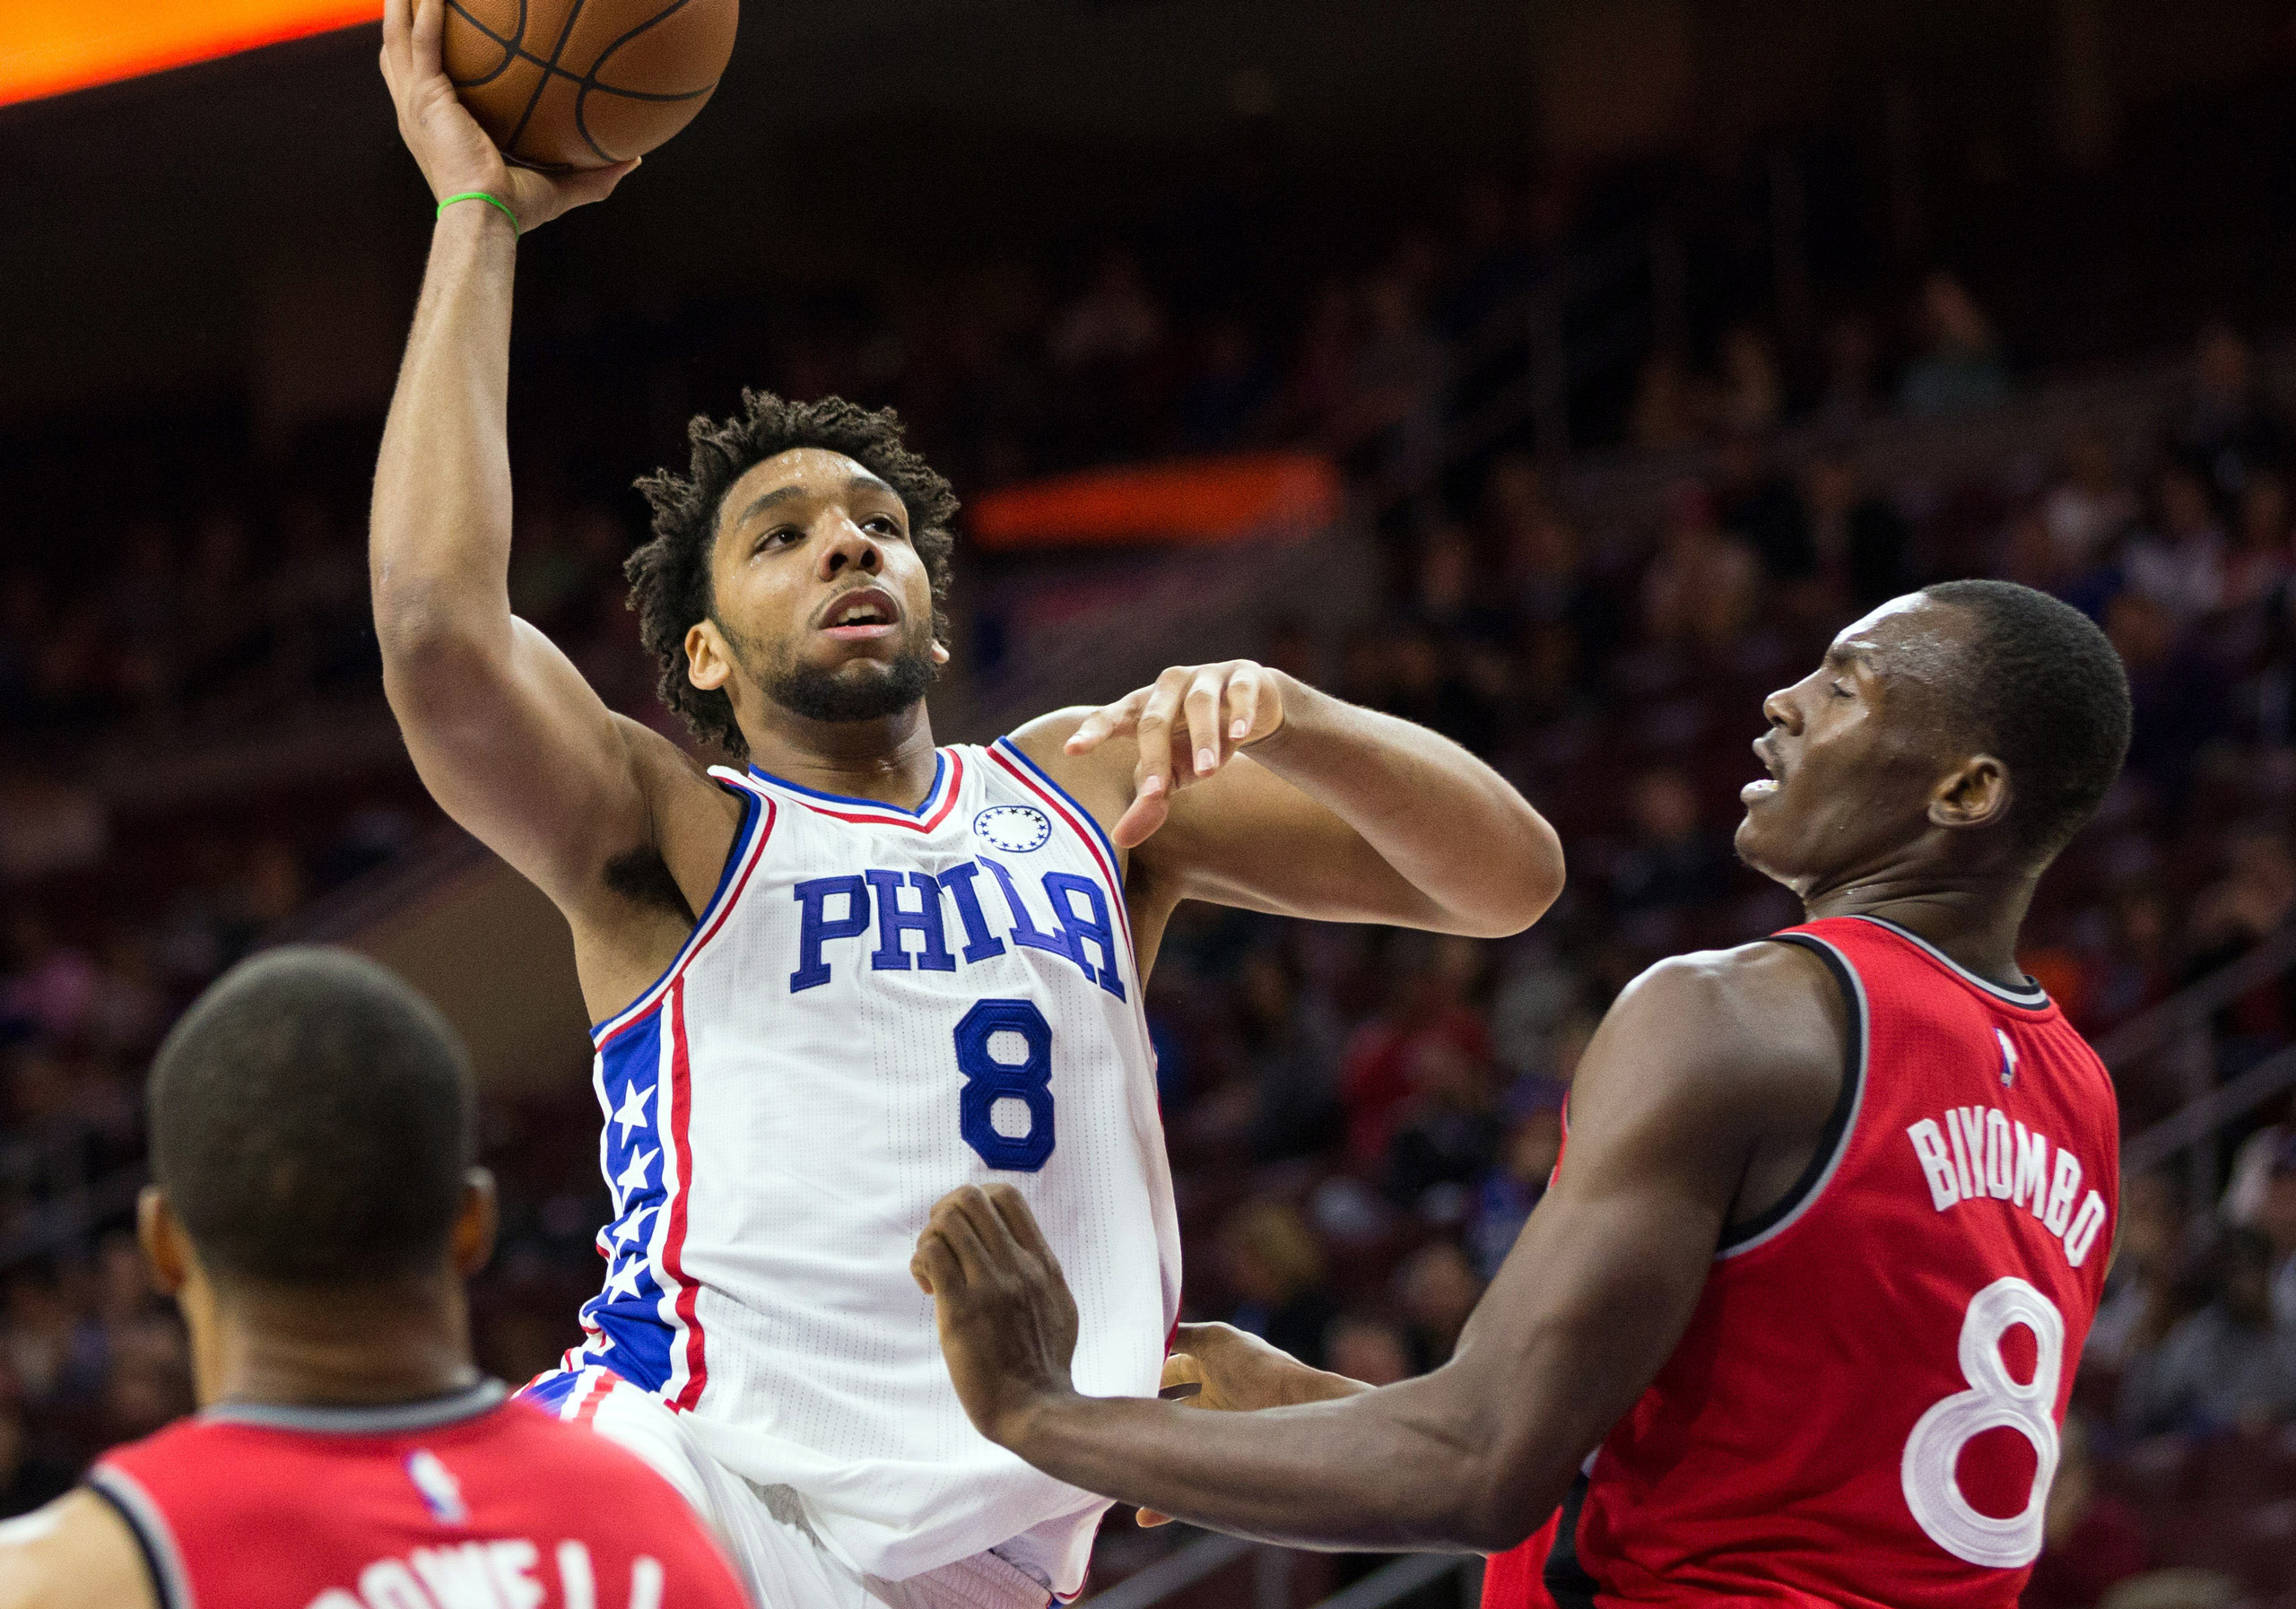 Philadelphia 76ers center Jahlil Okafor shoots against the defense of Toronto Raptors forward Bismack Biyombo during the second half at Wells Fargo Center in Philadelphia on Nov 11, 2015.